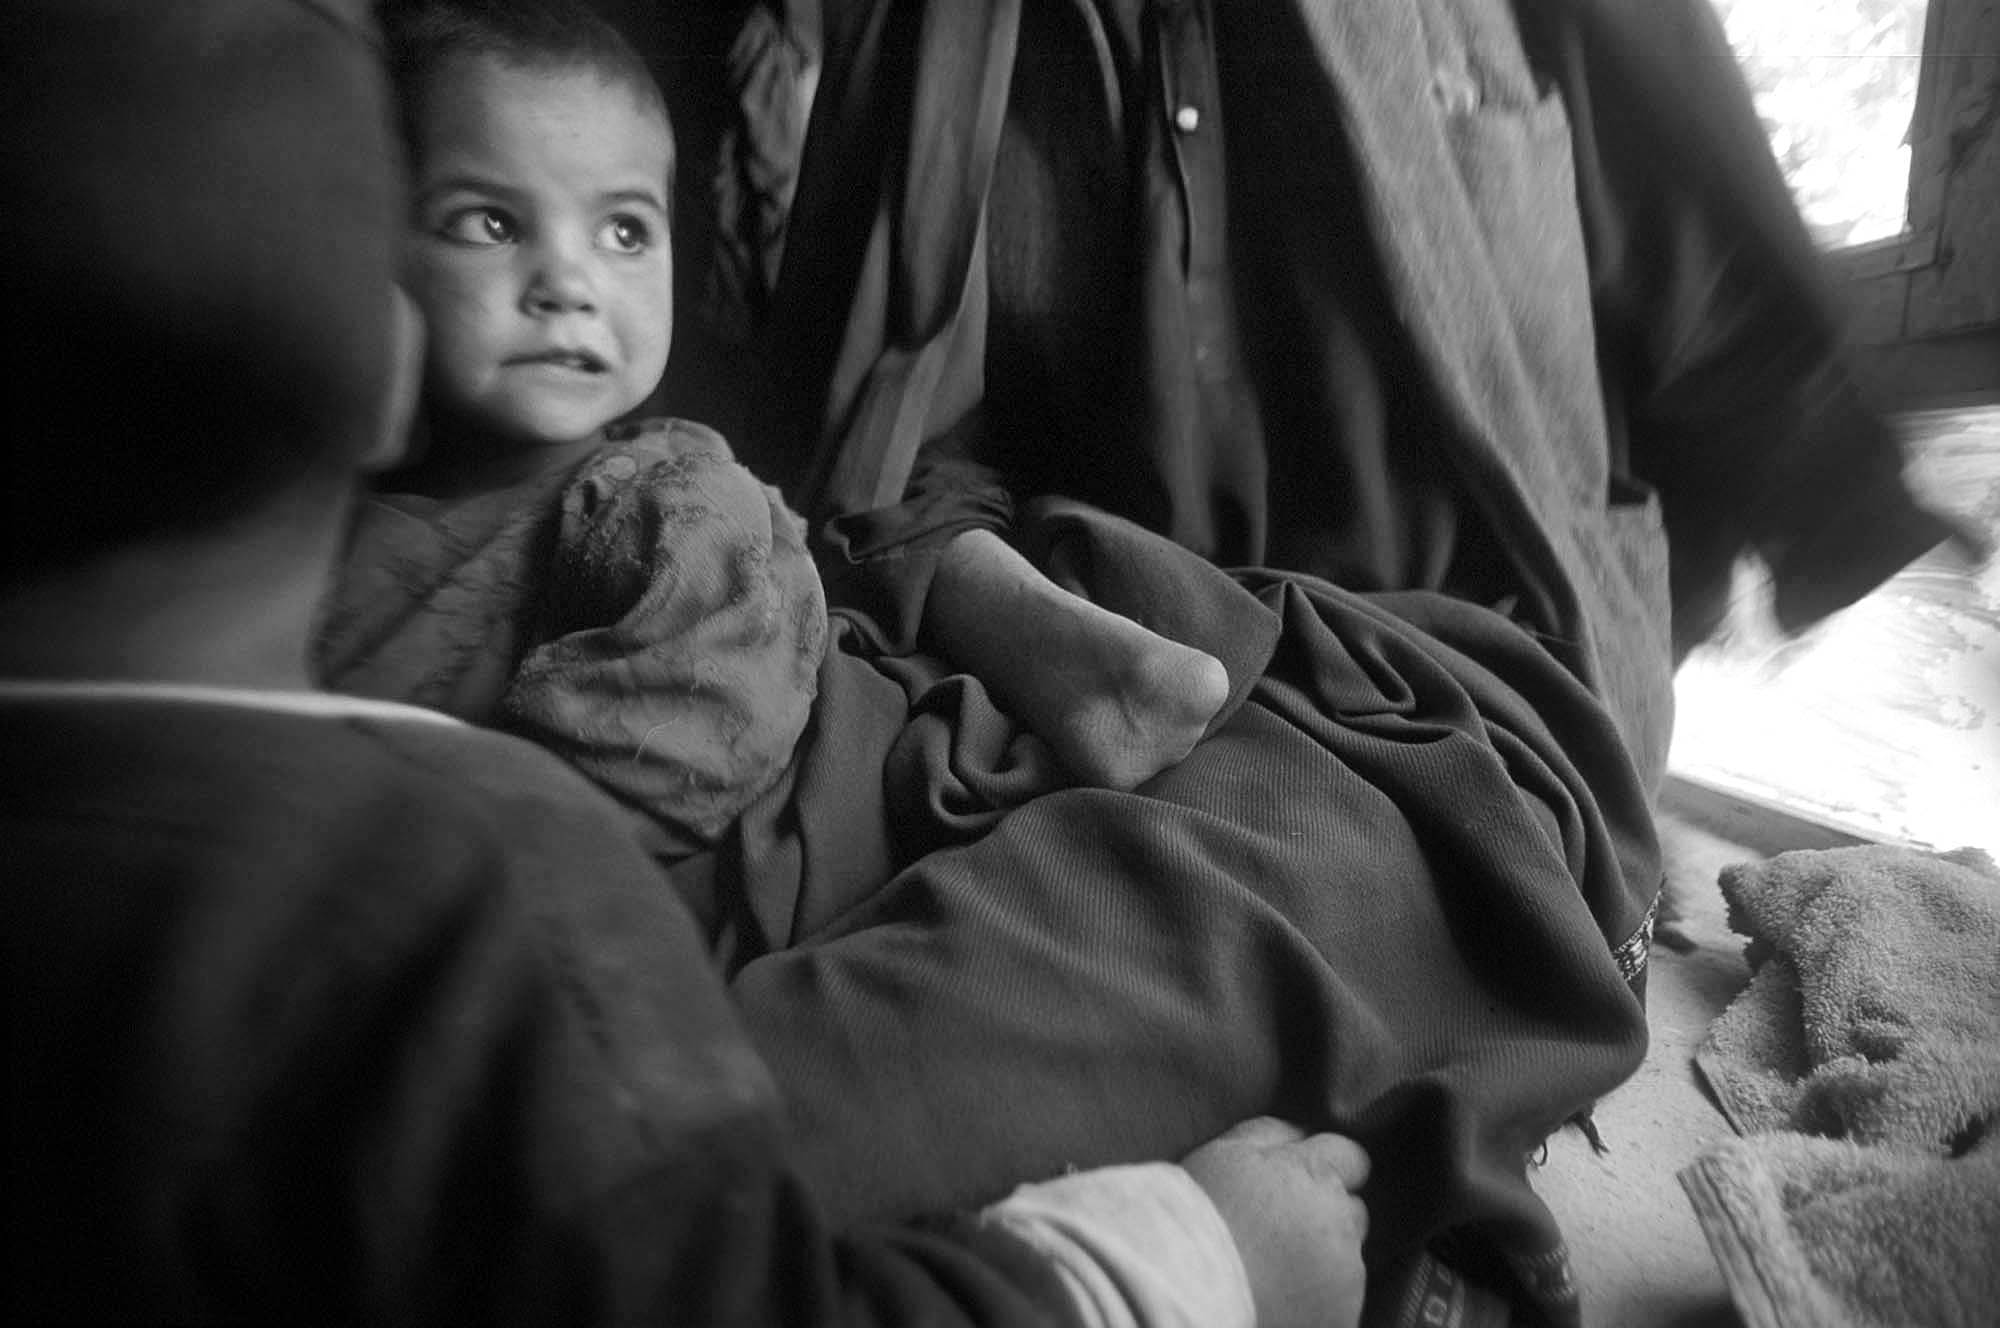 Life under the Taliban/ Landmine Victims: Abdullah, a landmine victim, sits with his son and daughter at home in Logar province, Afghanistan, May 2000.  For seven years, Abdullah was involved in fighting on behalf of the mujhideen, and stopped only when he lost both hands and his sight when he leaned on a landmine in an attempted attack on the Russian troops.   He looks at the war now, and thinks {quote}..fighting is totally wrong.  It is worthless--just killing each other.  It increases the number of widows, and the number of disabled.  Abdullah has received vocational training from CDAP, an NGO for landmine victims, and earns minimal money as spends most of his days sitting at home with his children.  Signs of 20 years of war plague Afghanistan's infrastructure and culture and affect every realm of life.